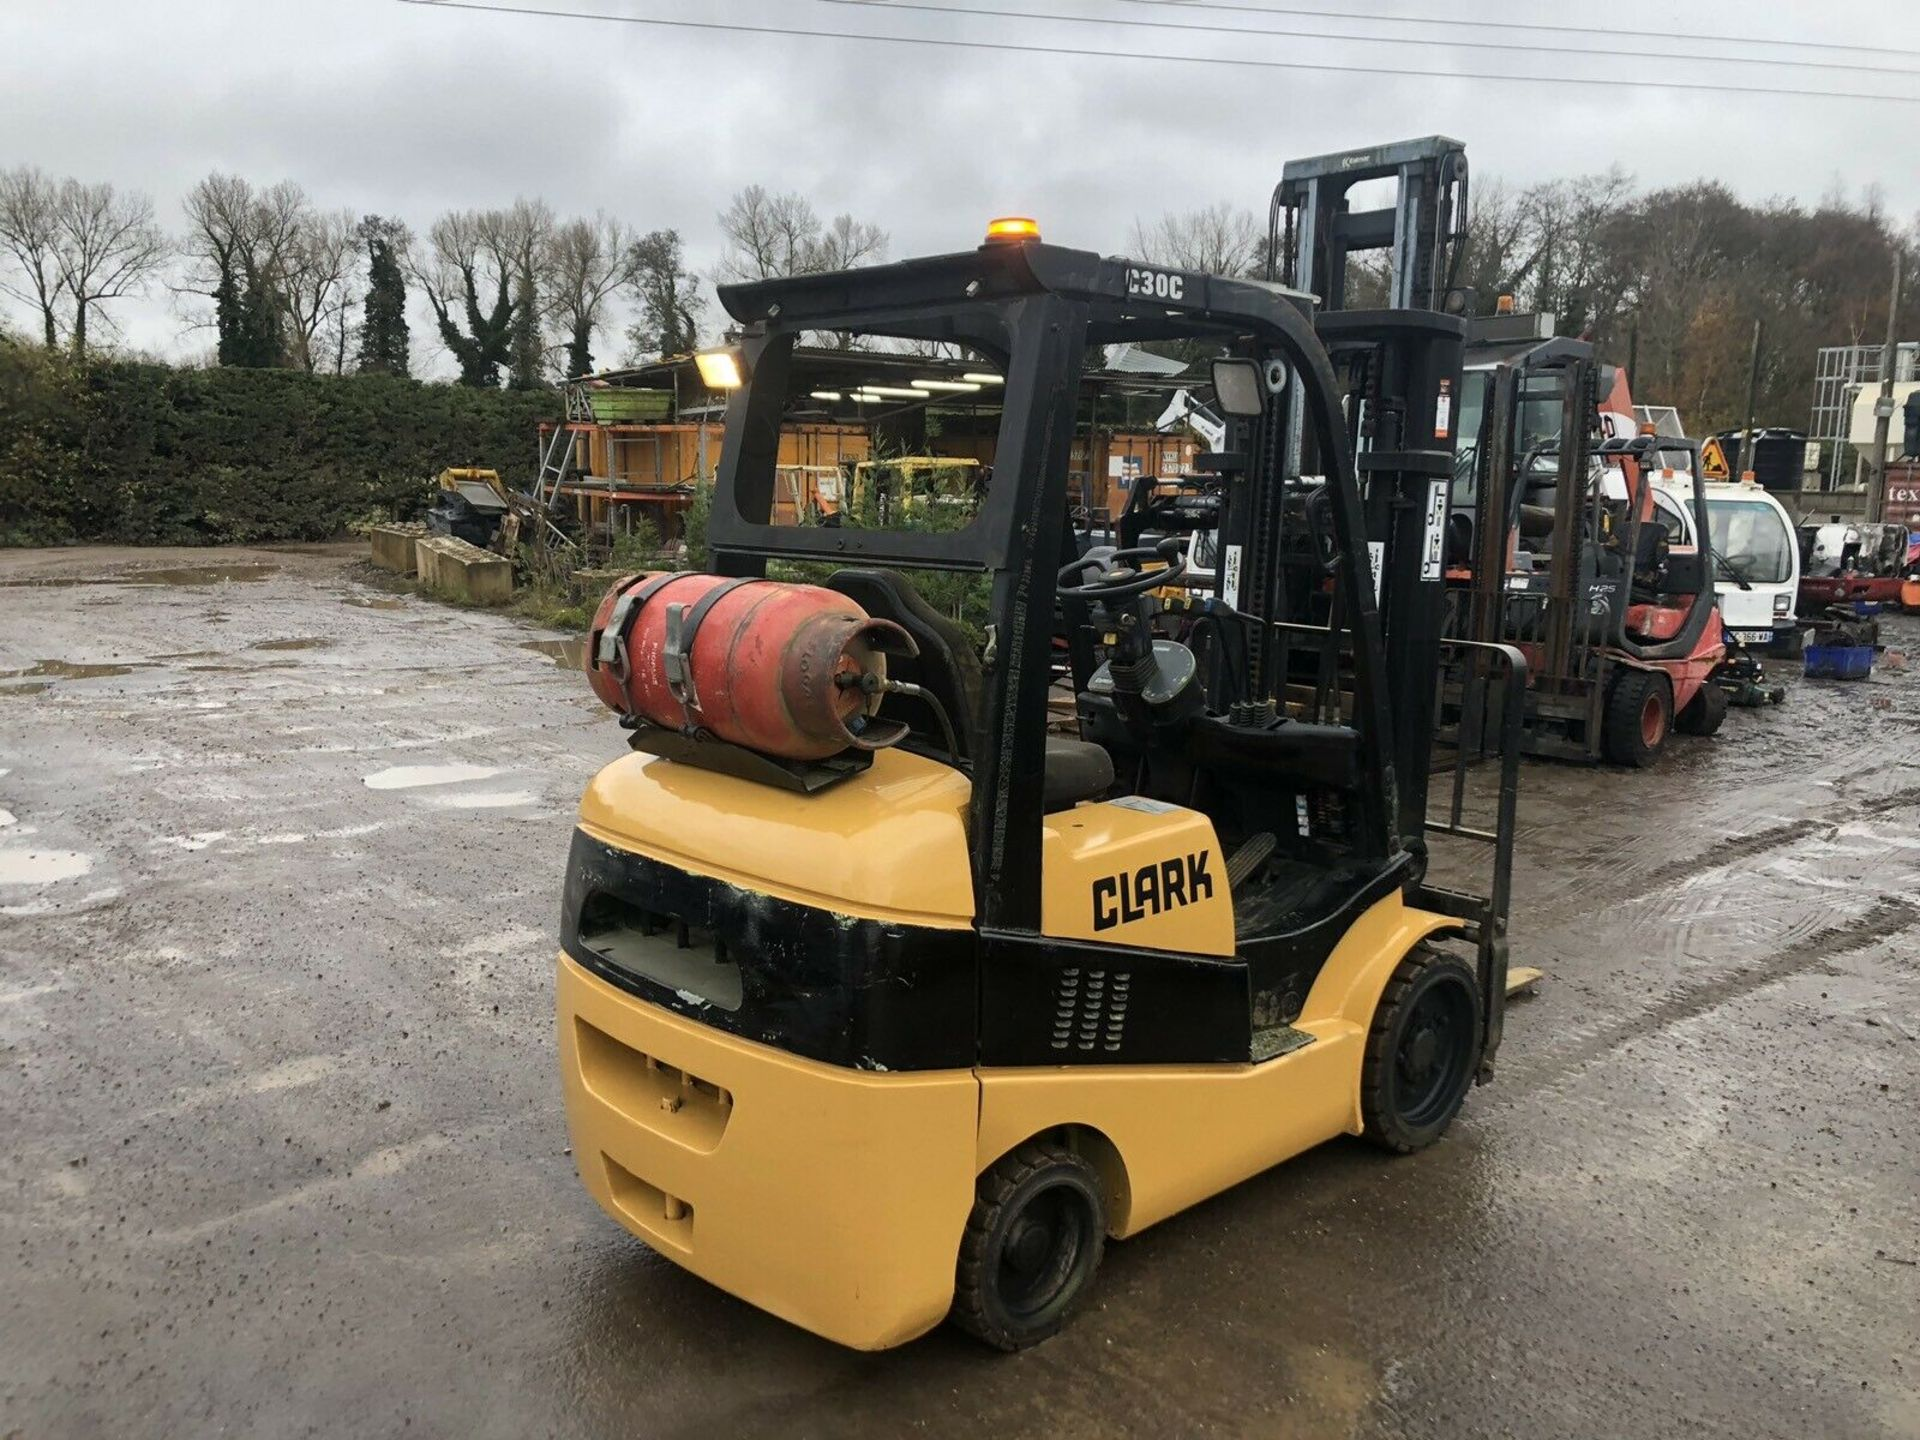 Lot 98 - 2003 CLARK C30, 3 TON GAS FORKLIFT, RUNS AND OPERATES AS IT SHOULD *PLUS VAT*